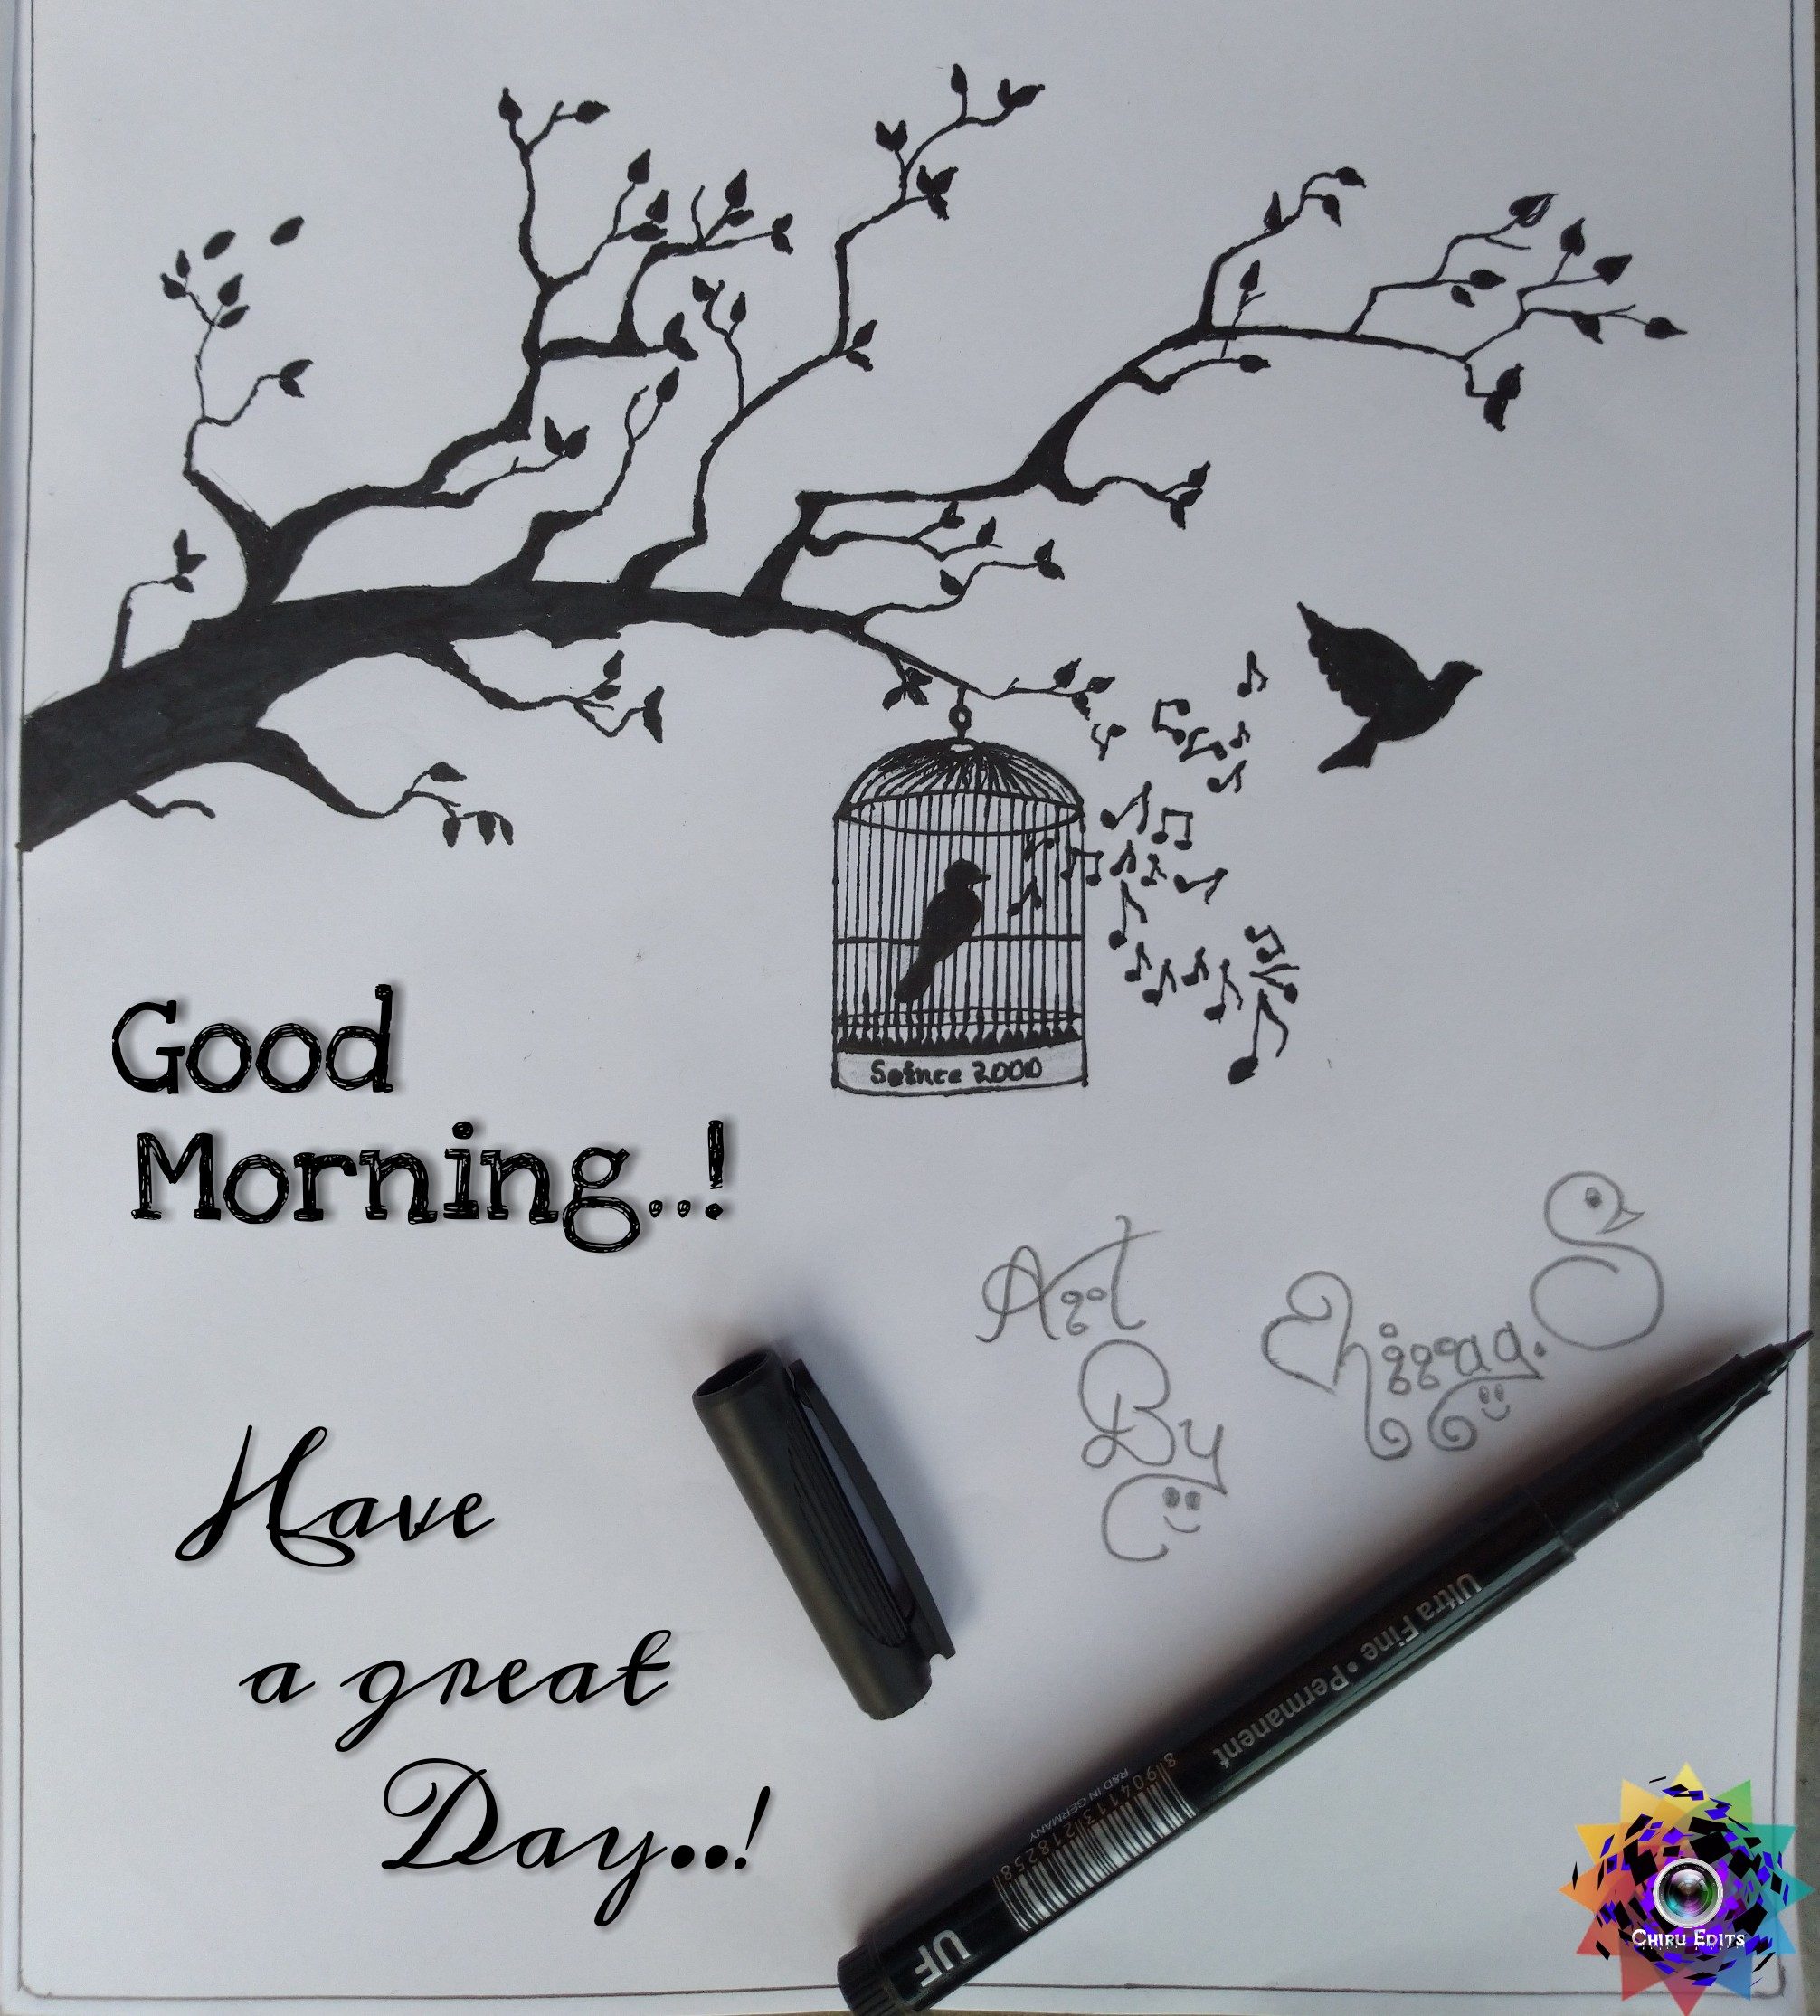 good morning 🙏 - UF CHIRU EDITS 81190 . 4 . 1 13112182581 R & D IN GERMANY Dayon ! Ultra Fine Permanent a great Have 230 Morning . . ! Good Seince 2000 - ShareChat